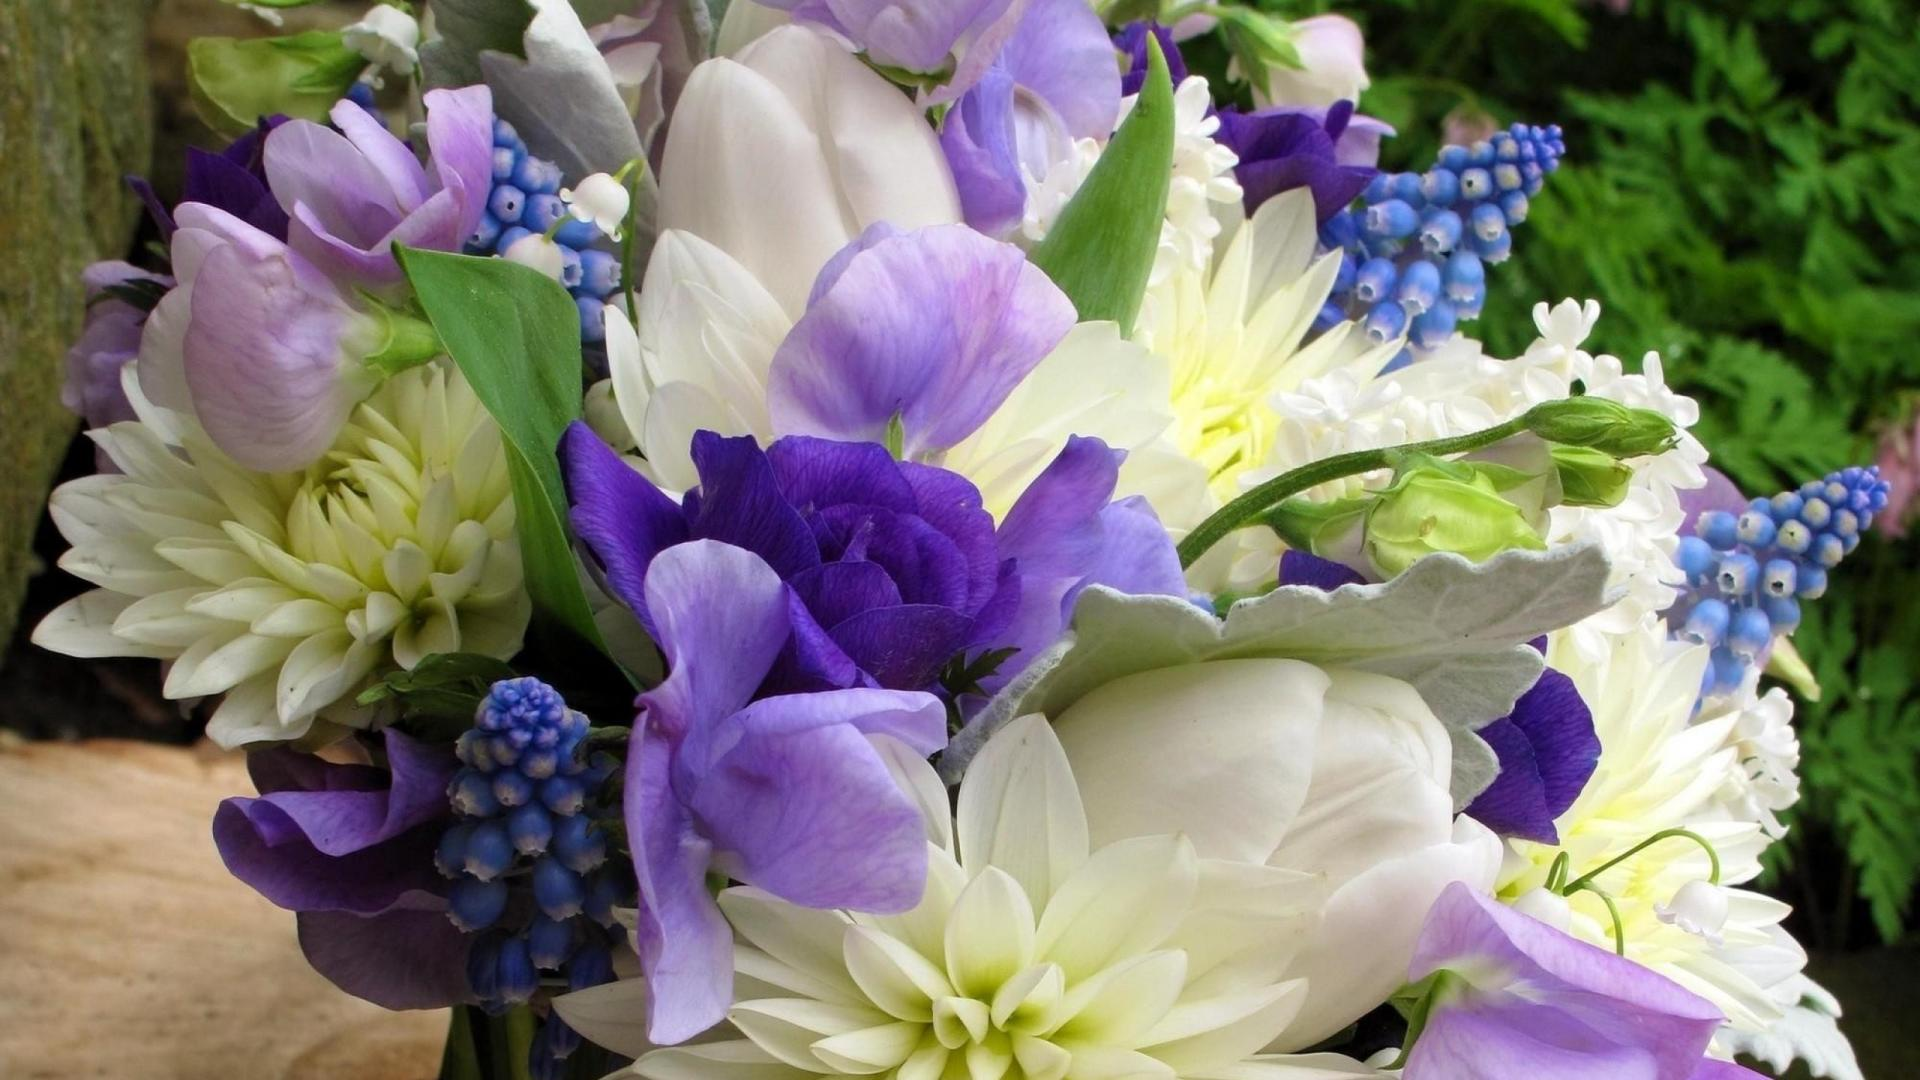 Spring Bouquet Wallpapers Top Free Spring Bouquet Backgrounds Wallpaperaccess